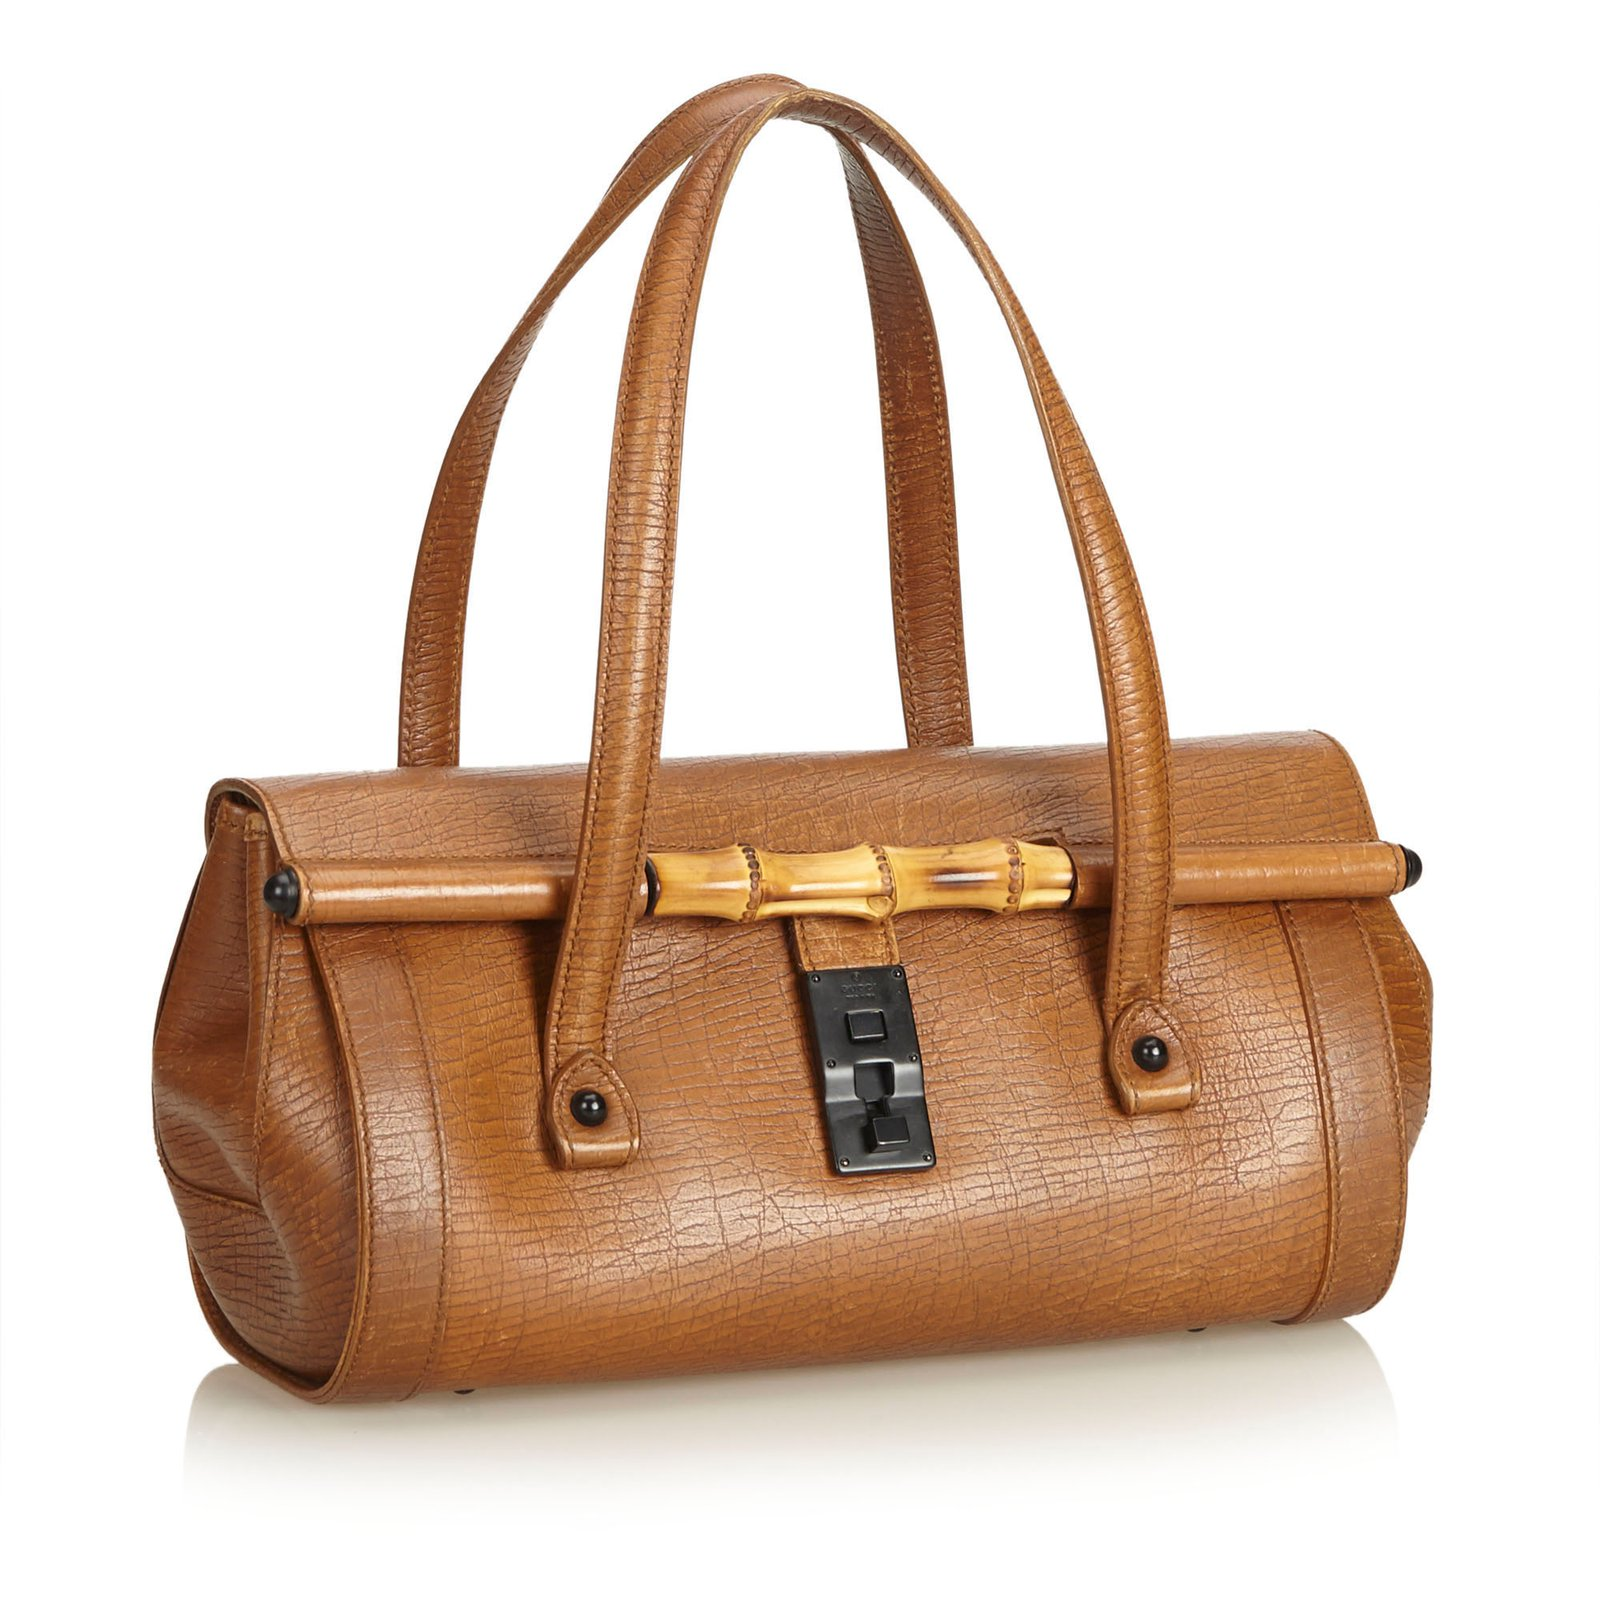 65df47d8cdc Gucci Leather Bamboo Bullet Bag Handbags Leather